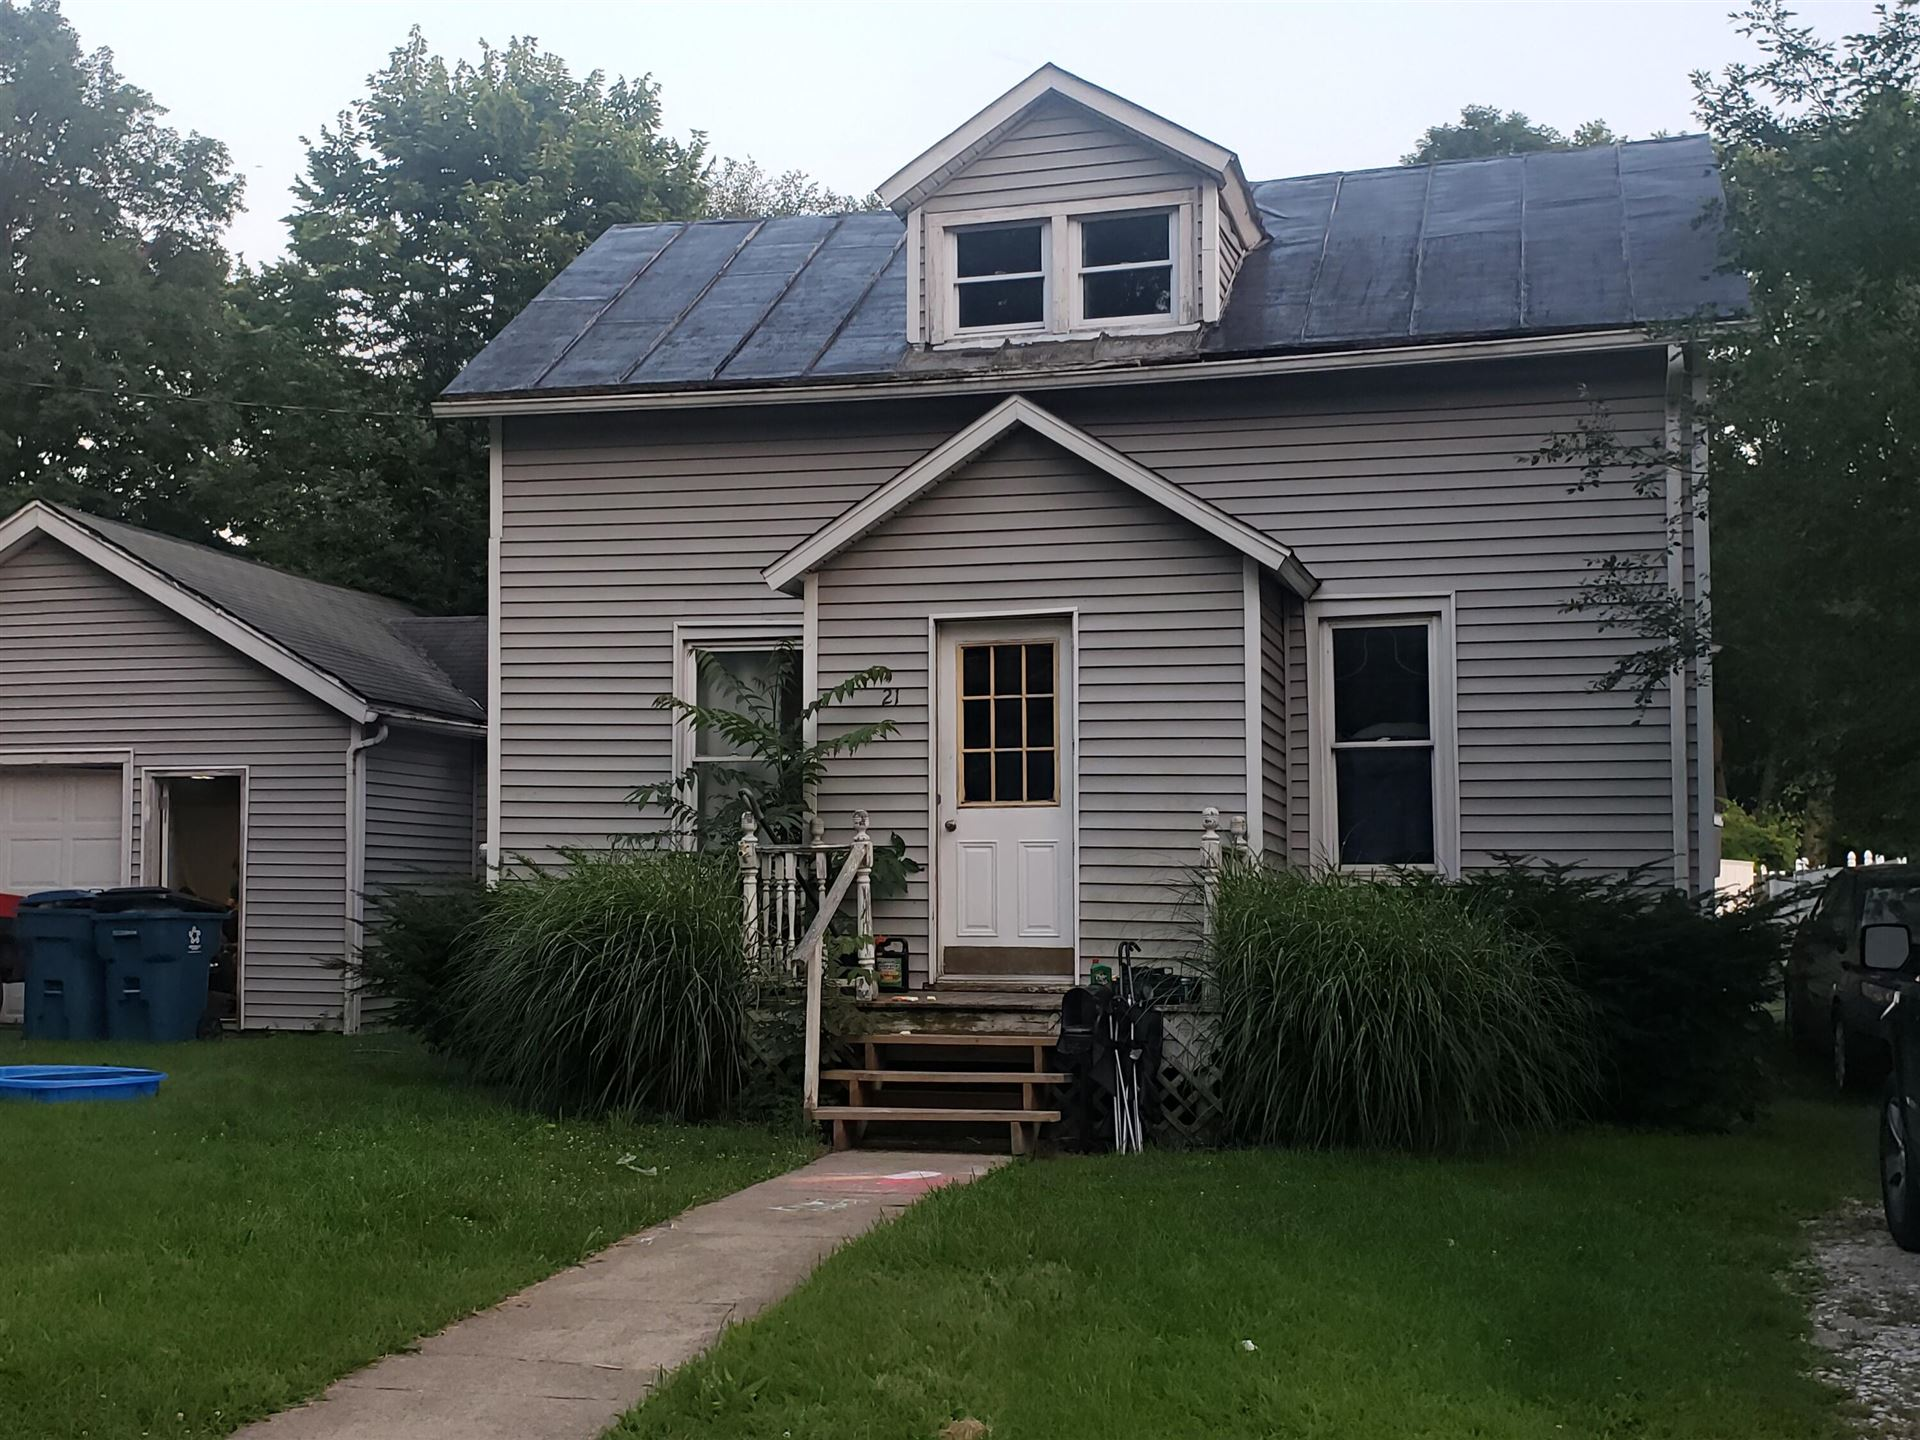 21 Lilly, Coldwater, MI 49036 - MLS#: 21097204